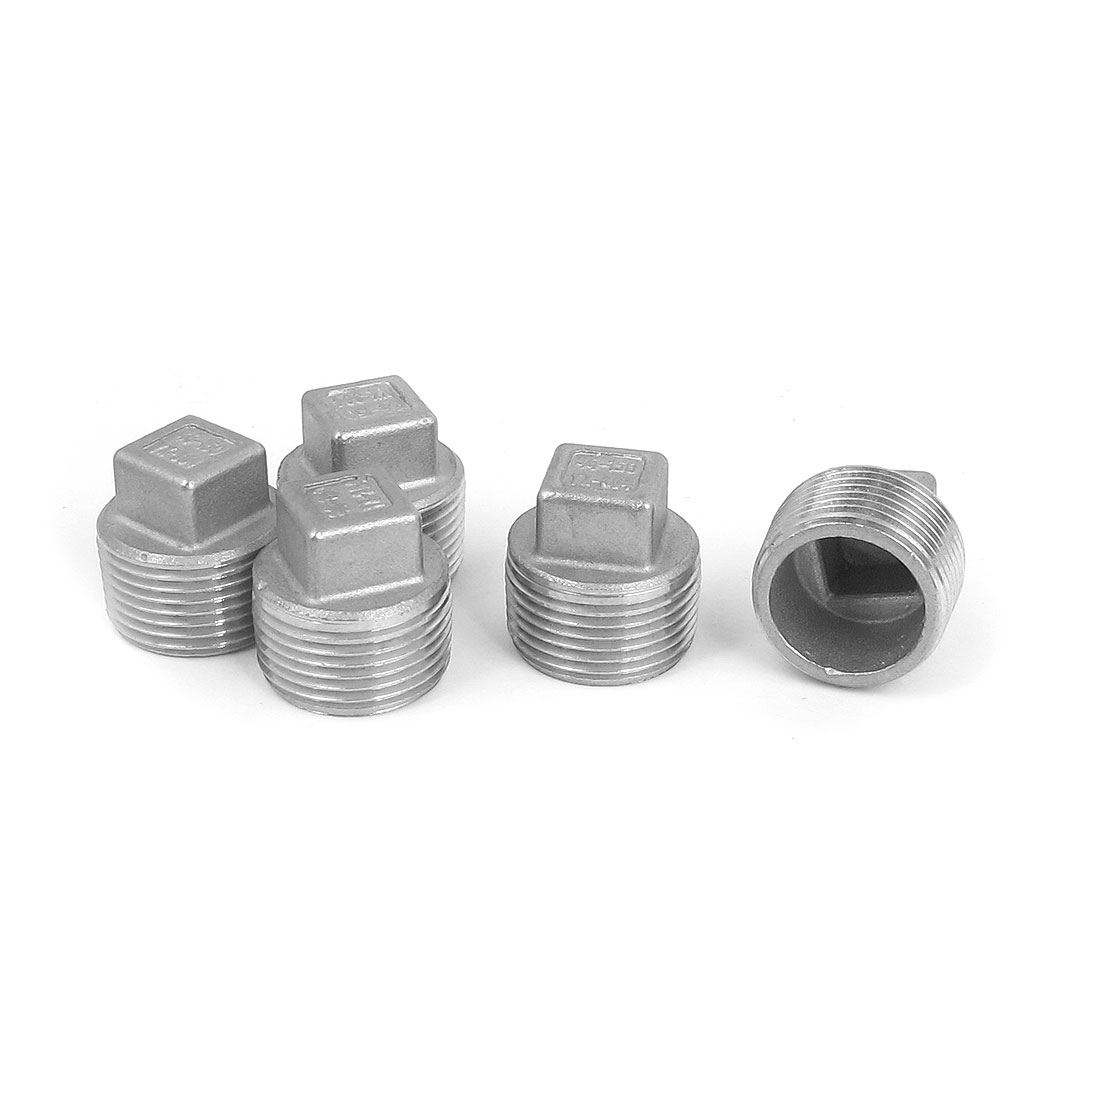 3/4 BSP Male Thread 304 Stainless Steel Square Head Pipe Fitting Plug 5 Pcs